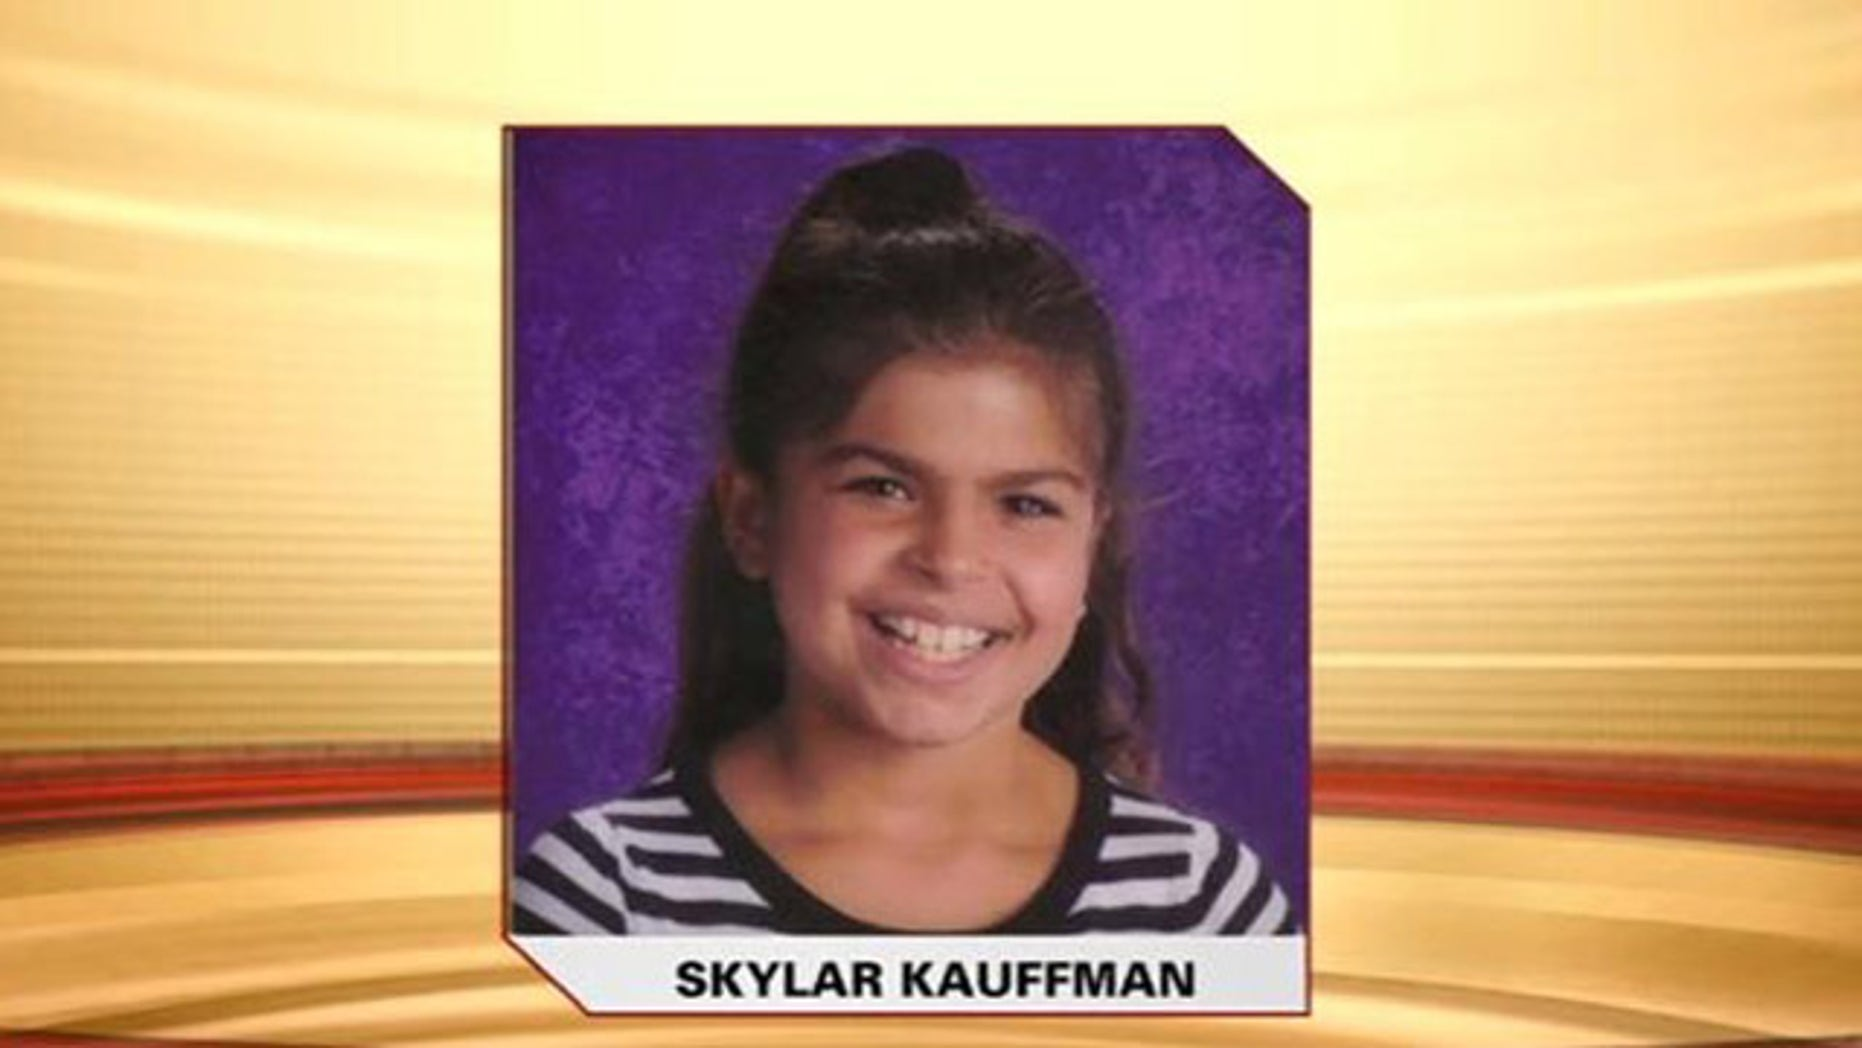 Police issued an Amber Alert for 9-year-old Skylar Kauffman, of Souderton, Pa., when she failed to return home for dinner Monday night. Her body was discovered a few hours later in a nearby trash bin, authorities said (MyFoxPhilly.com).